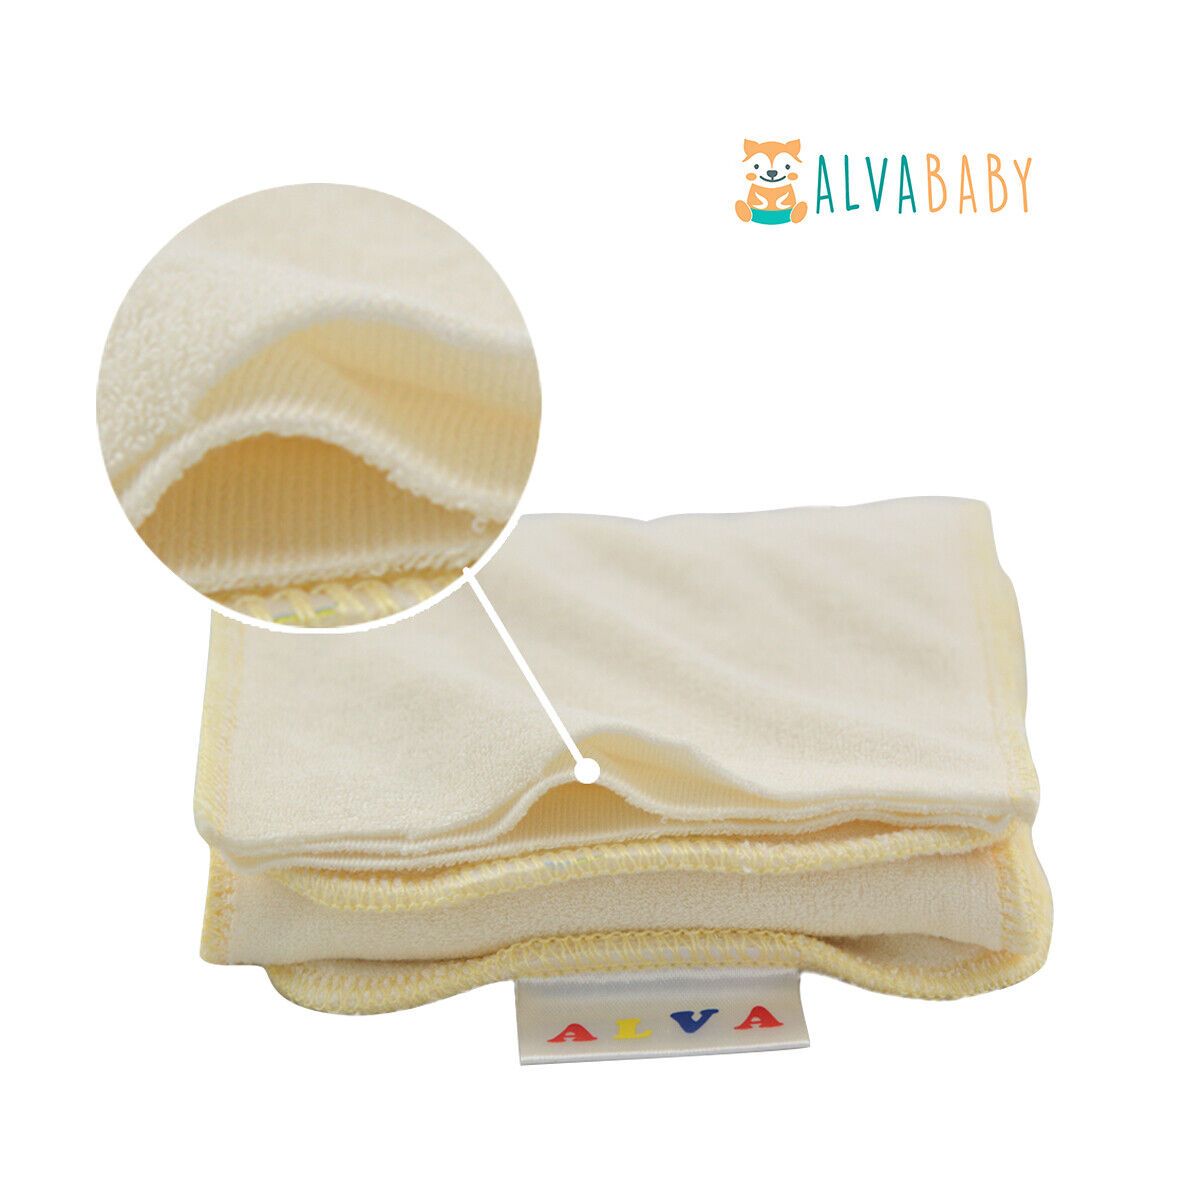 ALVABABY Cloth Diapers One Size Reusable Washable Pocket Nappy + Insert U Pick With 1 3layers Bamboo Insert